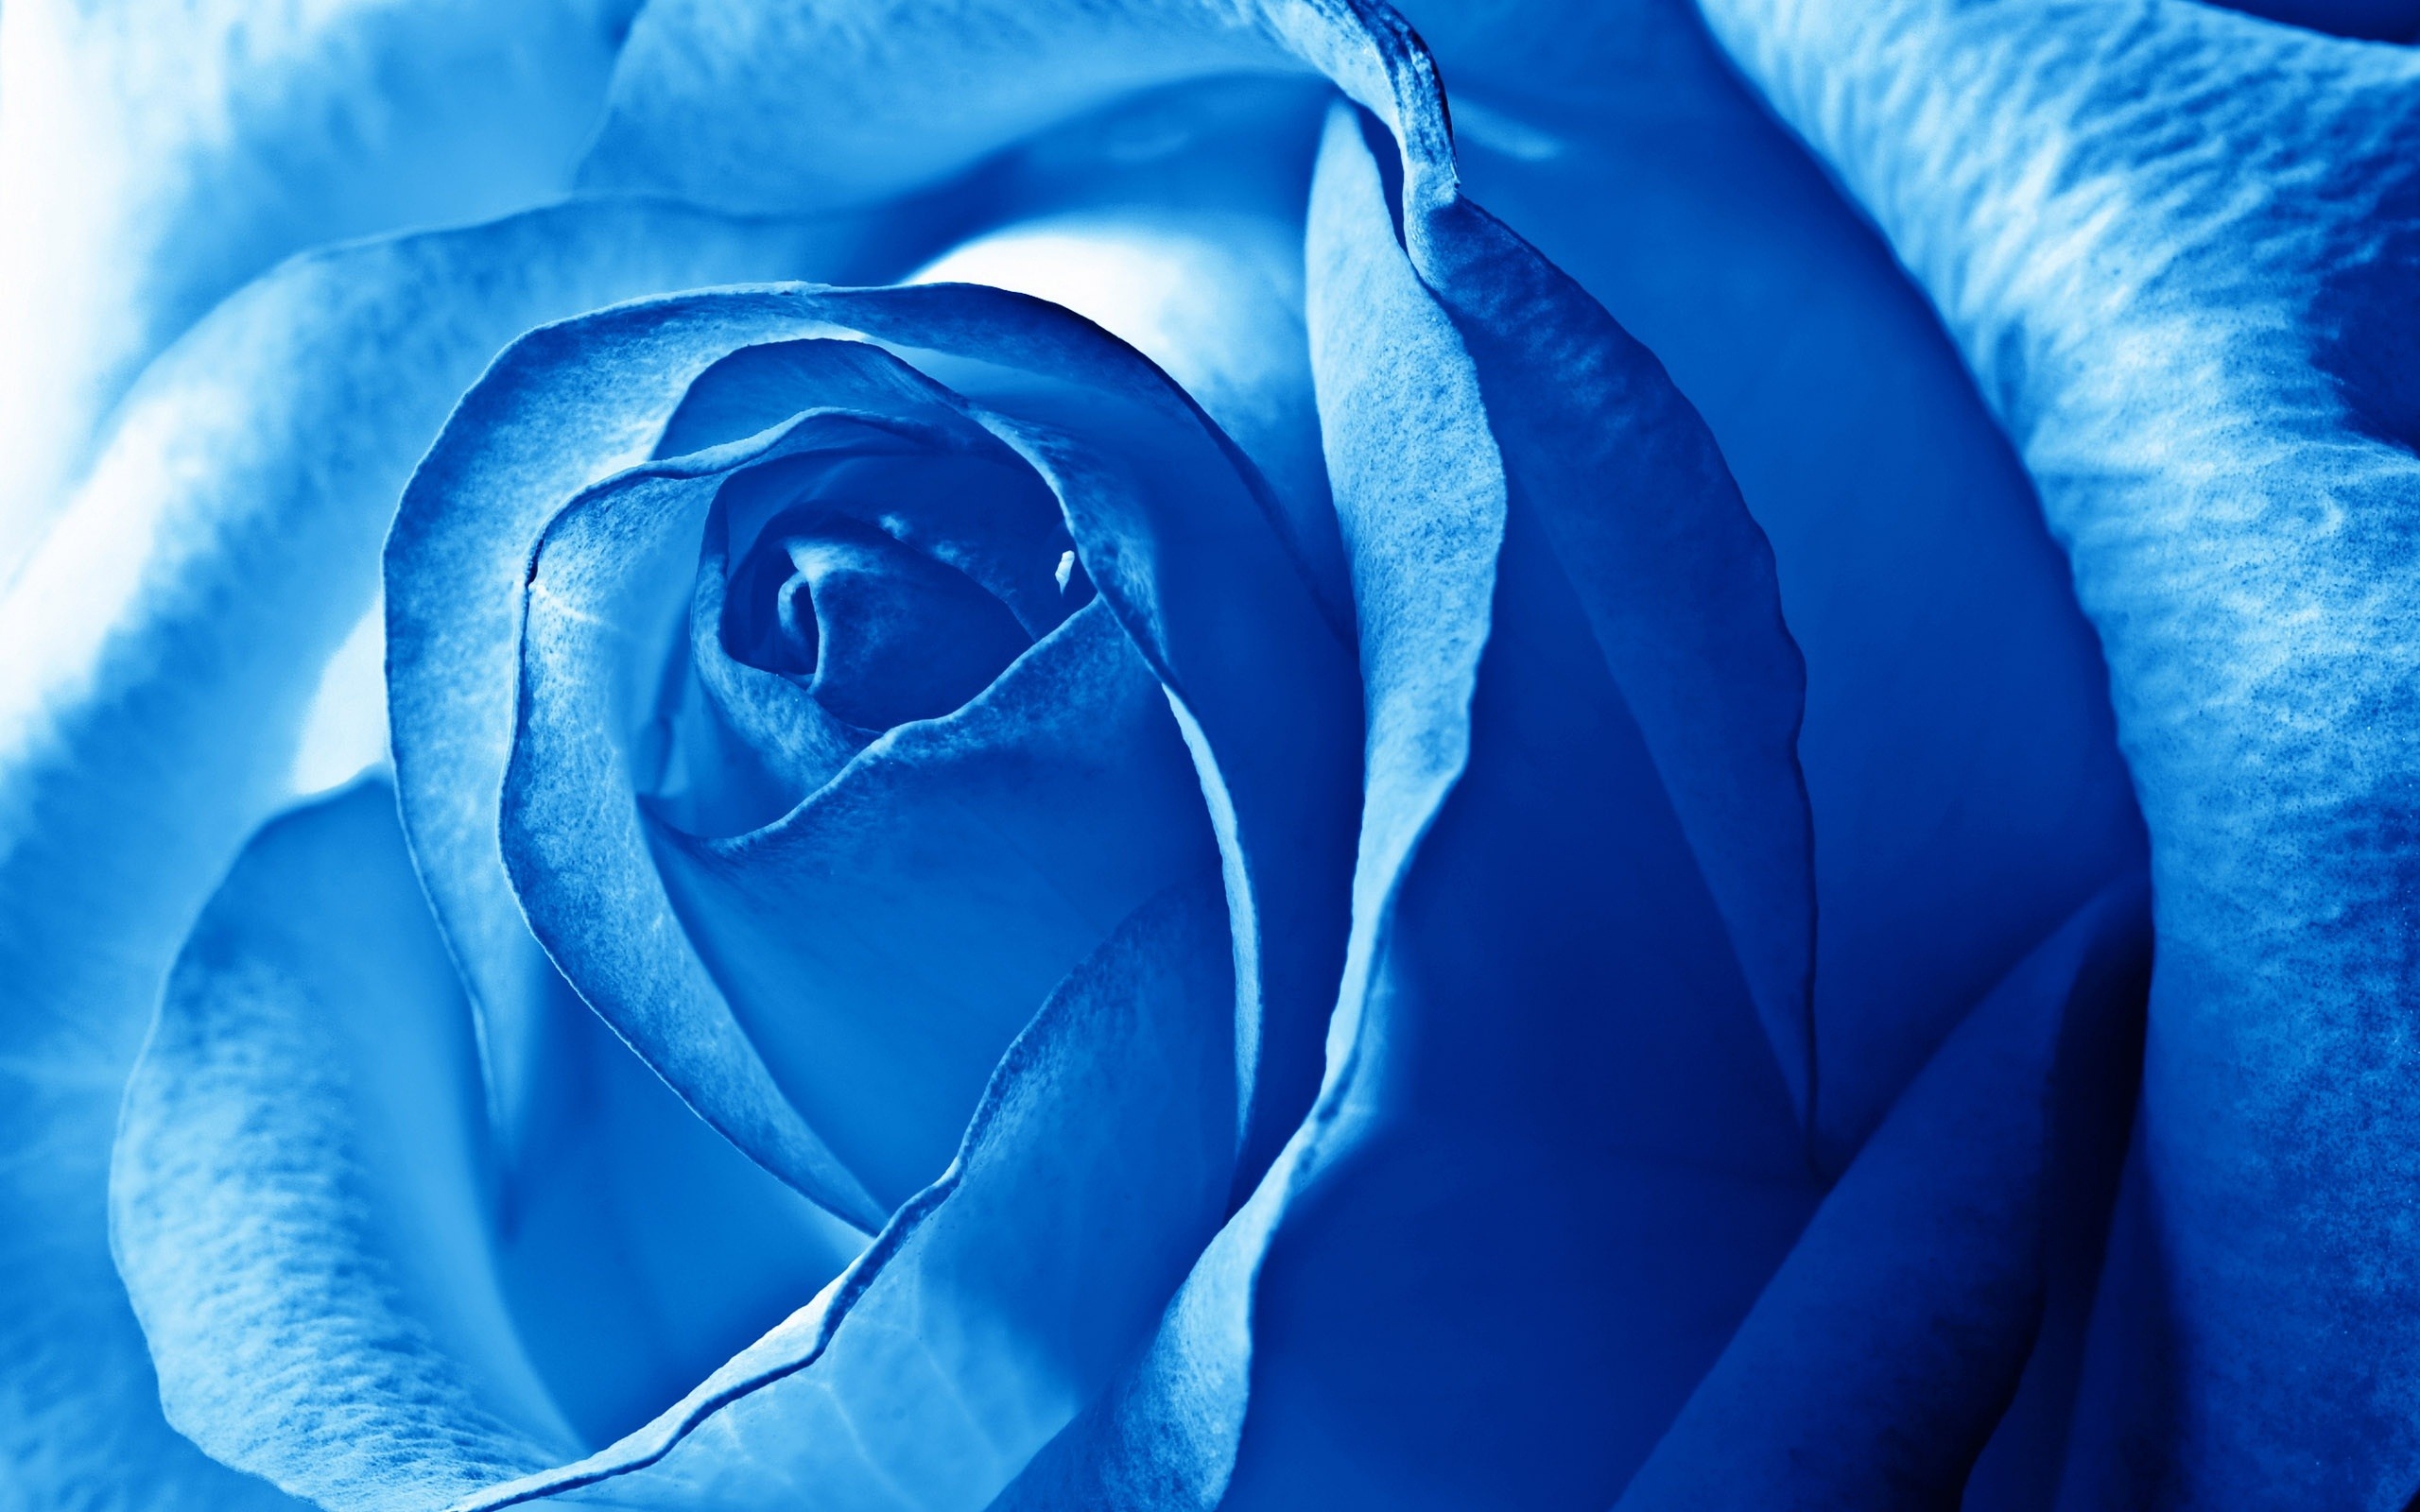 Res: 2560x1600, Blue Flower